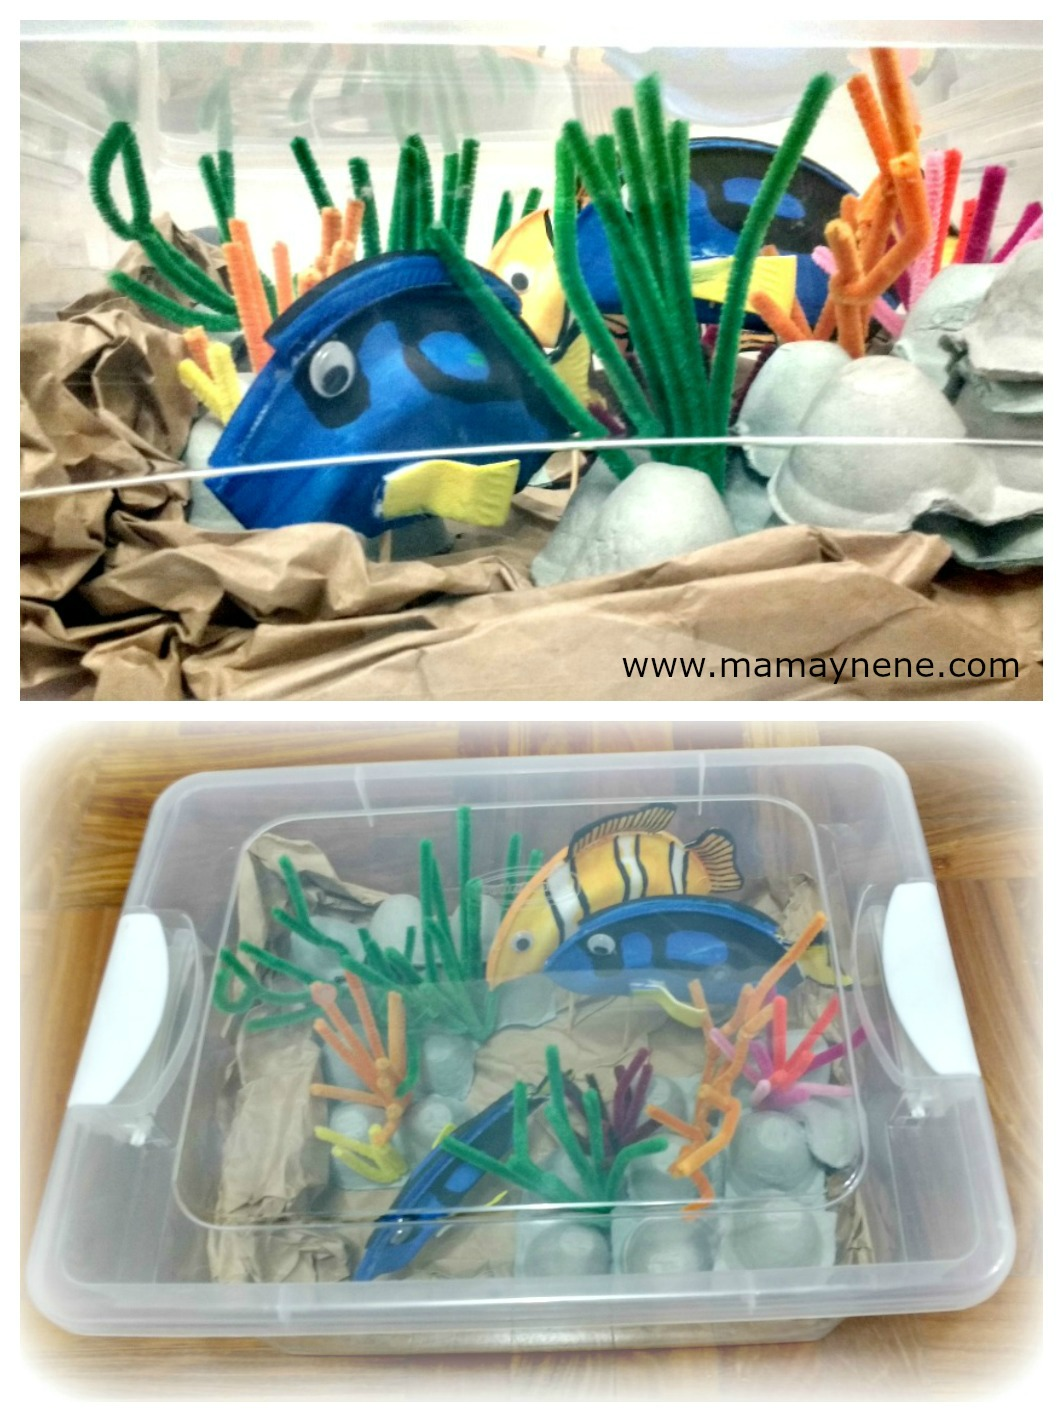 ACUARIO-DORY-NEMO-DIY-MAMAYNENE-CRAFT-KIDS-RECICLAR